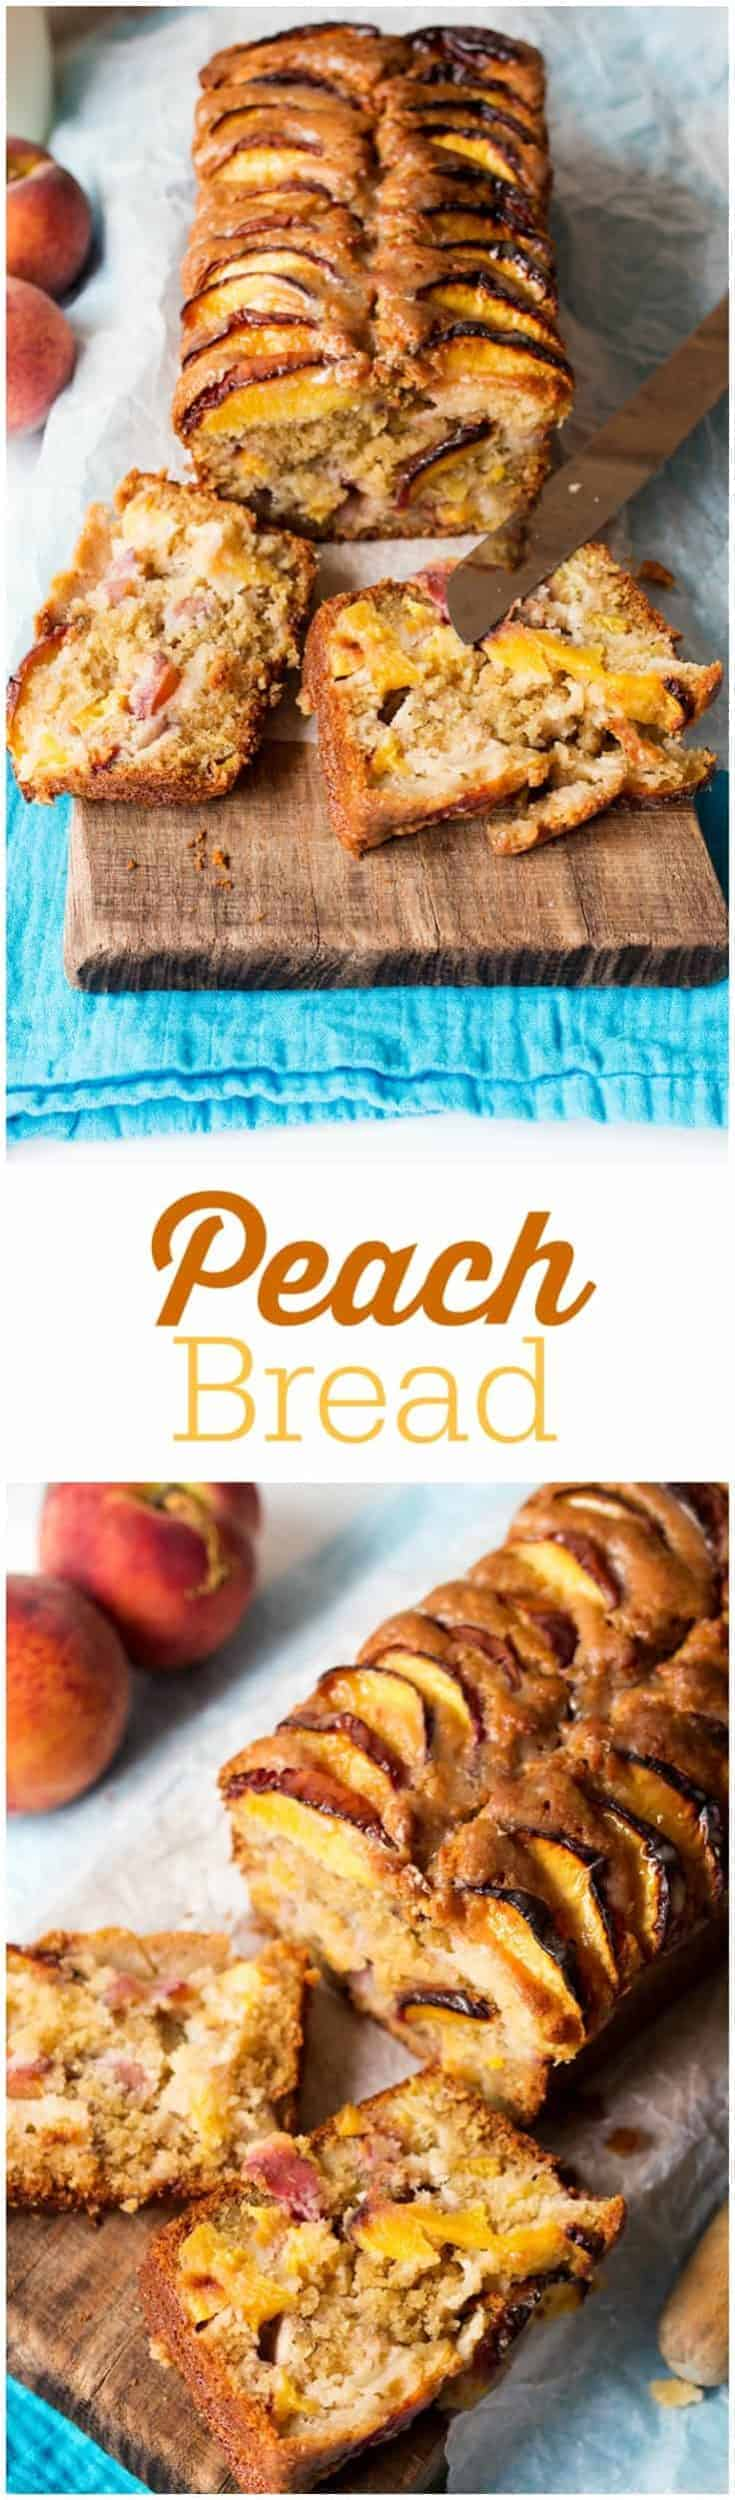 Peach Bread - Moist and fruity with a sticky brown sugar glaze.